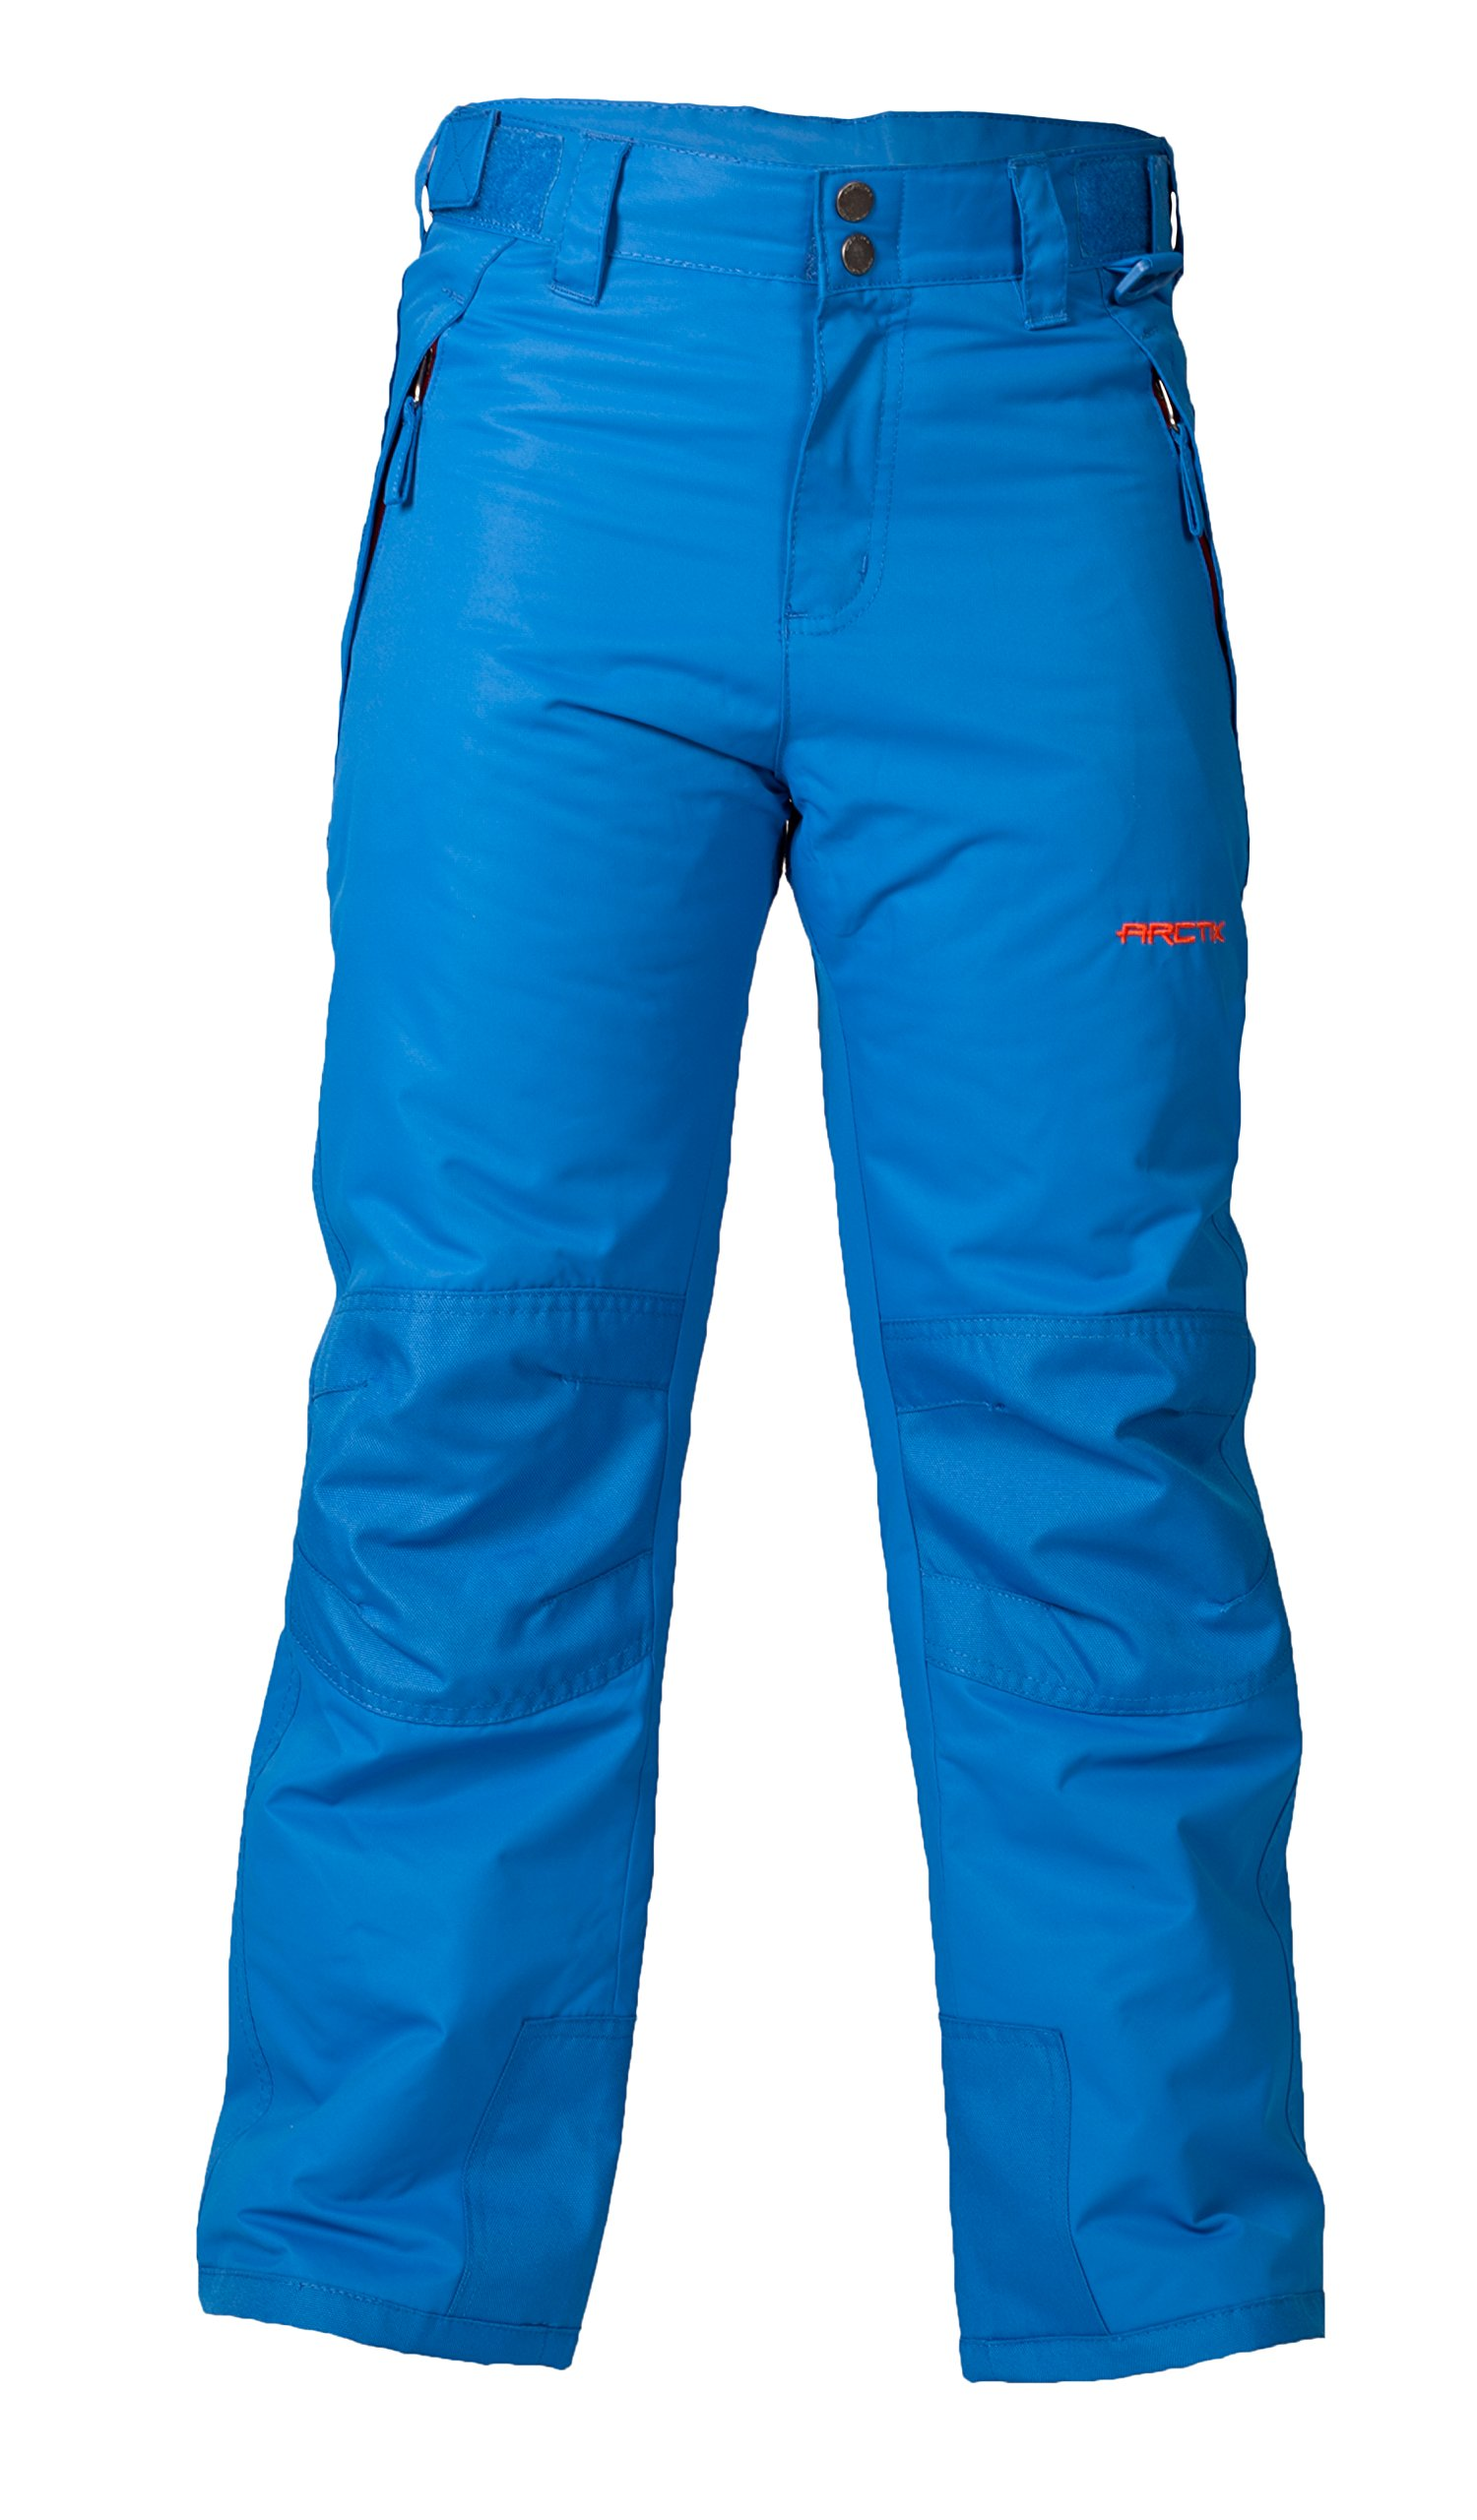 Arctix Youth Snow Pants with Reinforced Knees and Seat, Nautica Blue, X-Small